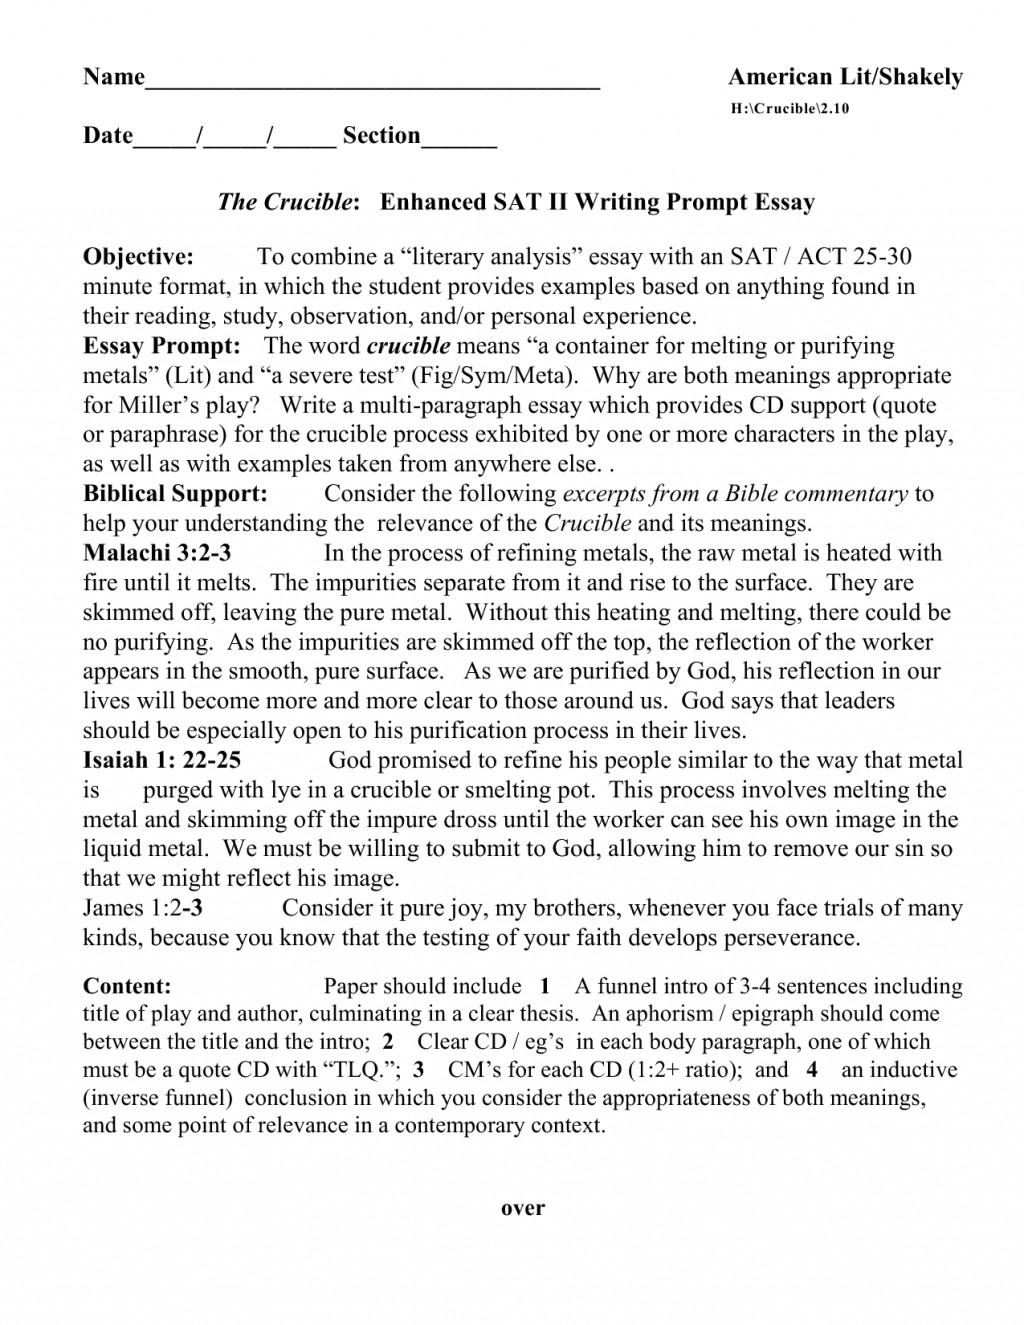 Madison : Sat practice test 5 essay example